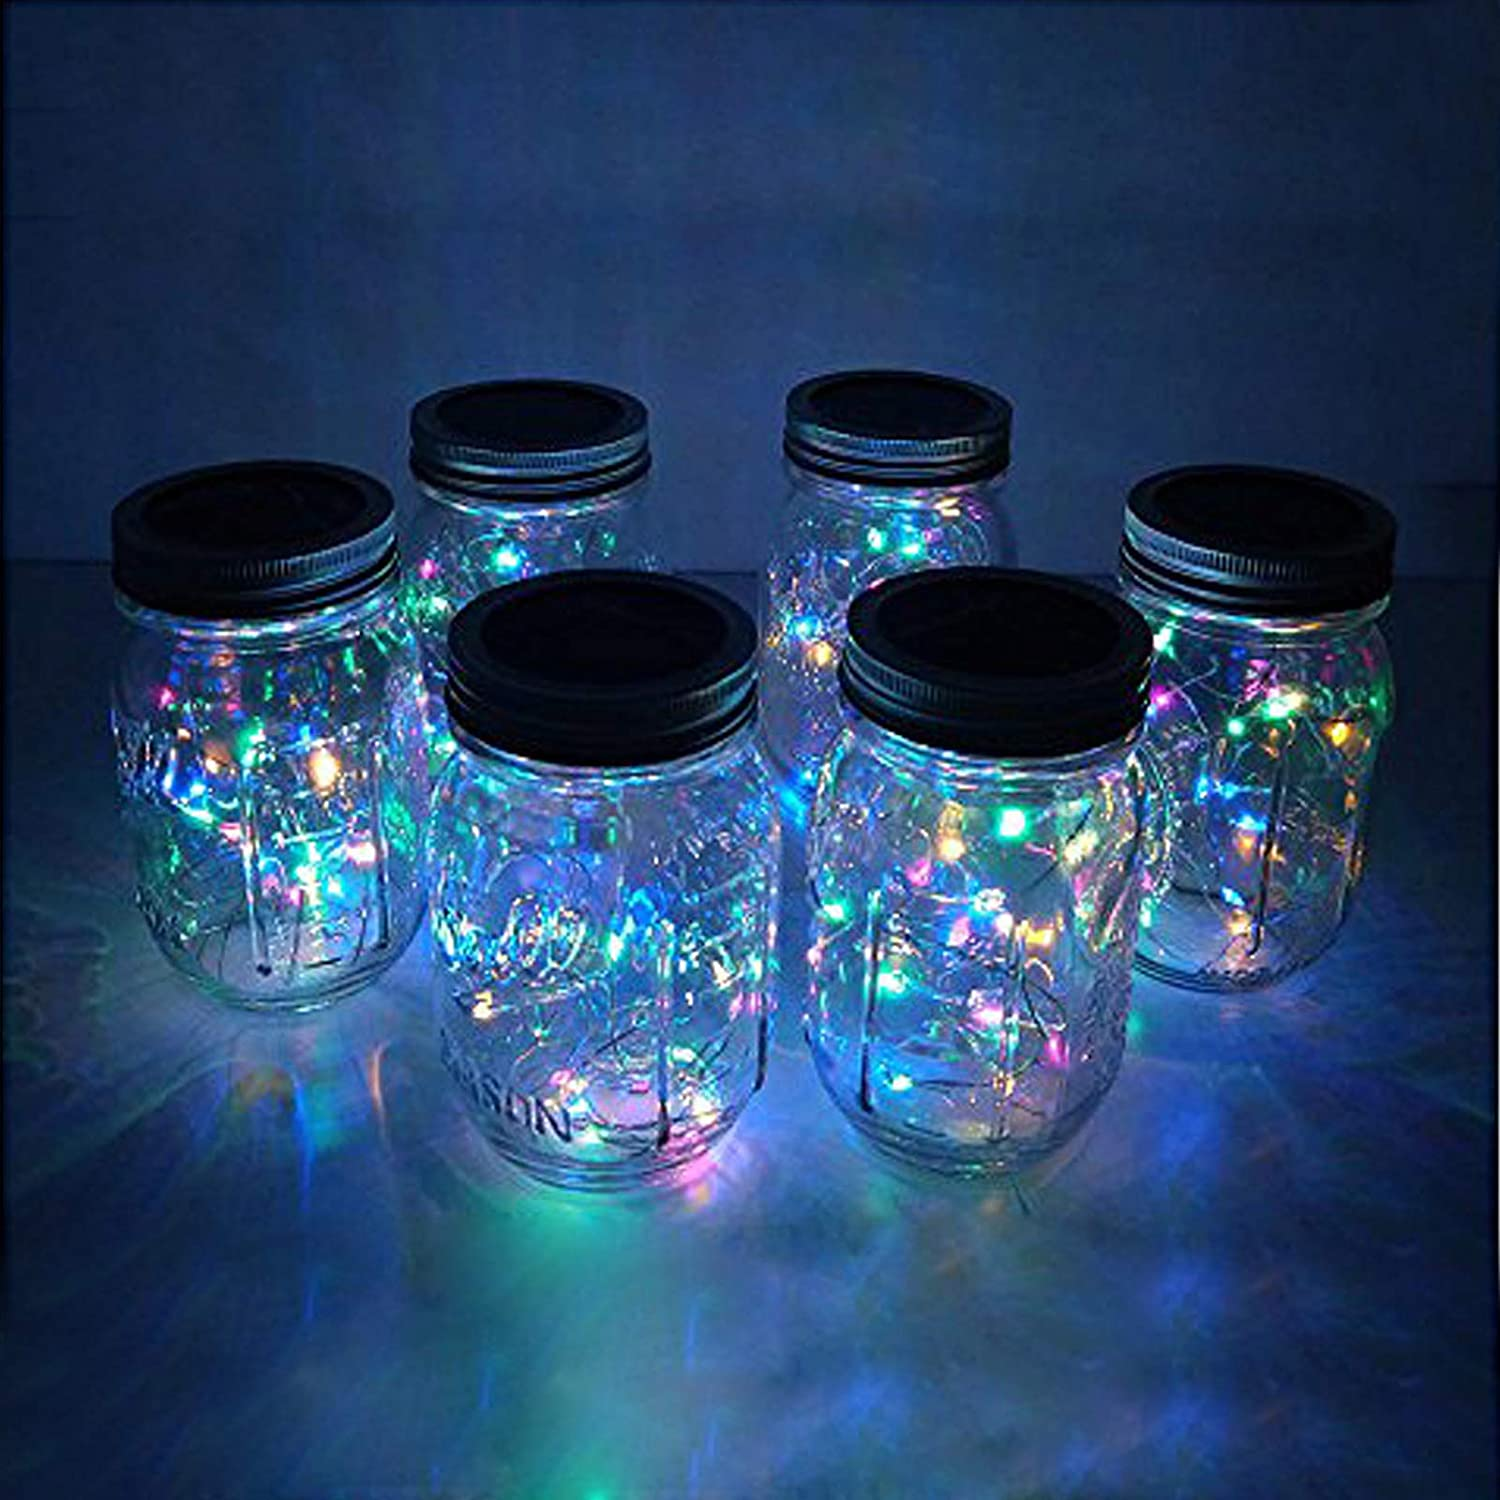 Centerpieces Great for Mason Jars 20-inch fairy lights with 10 LEDs per line Short Fairy Lights Wedding Lights